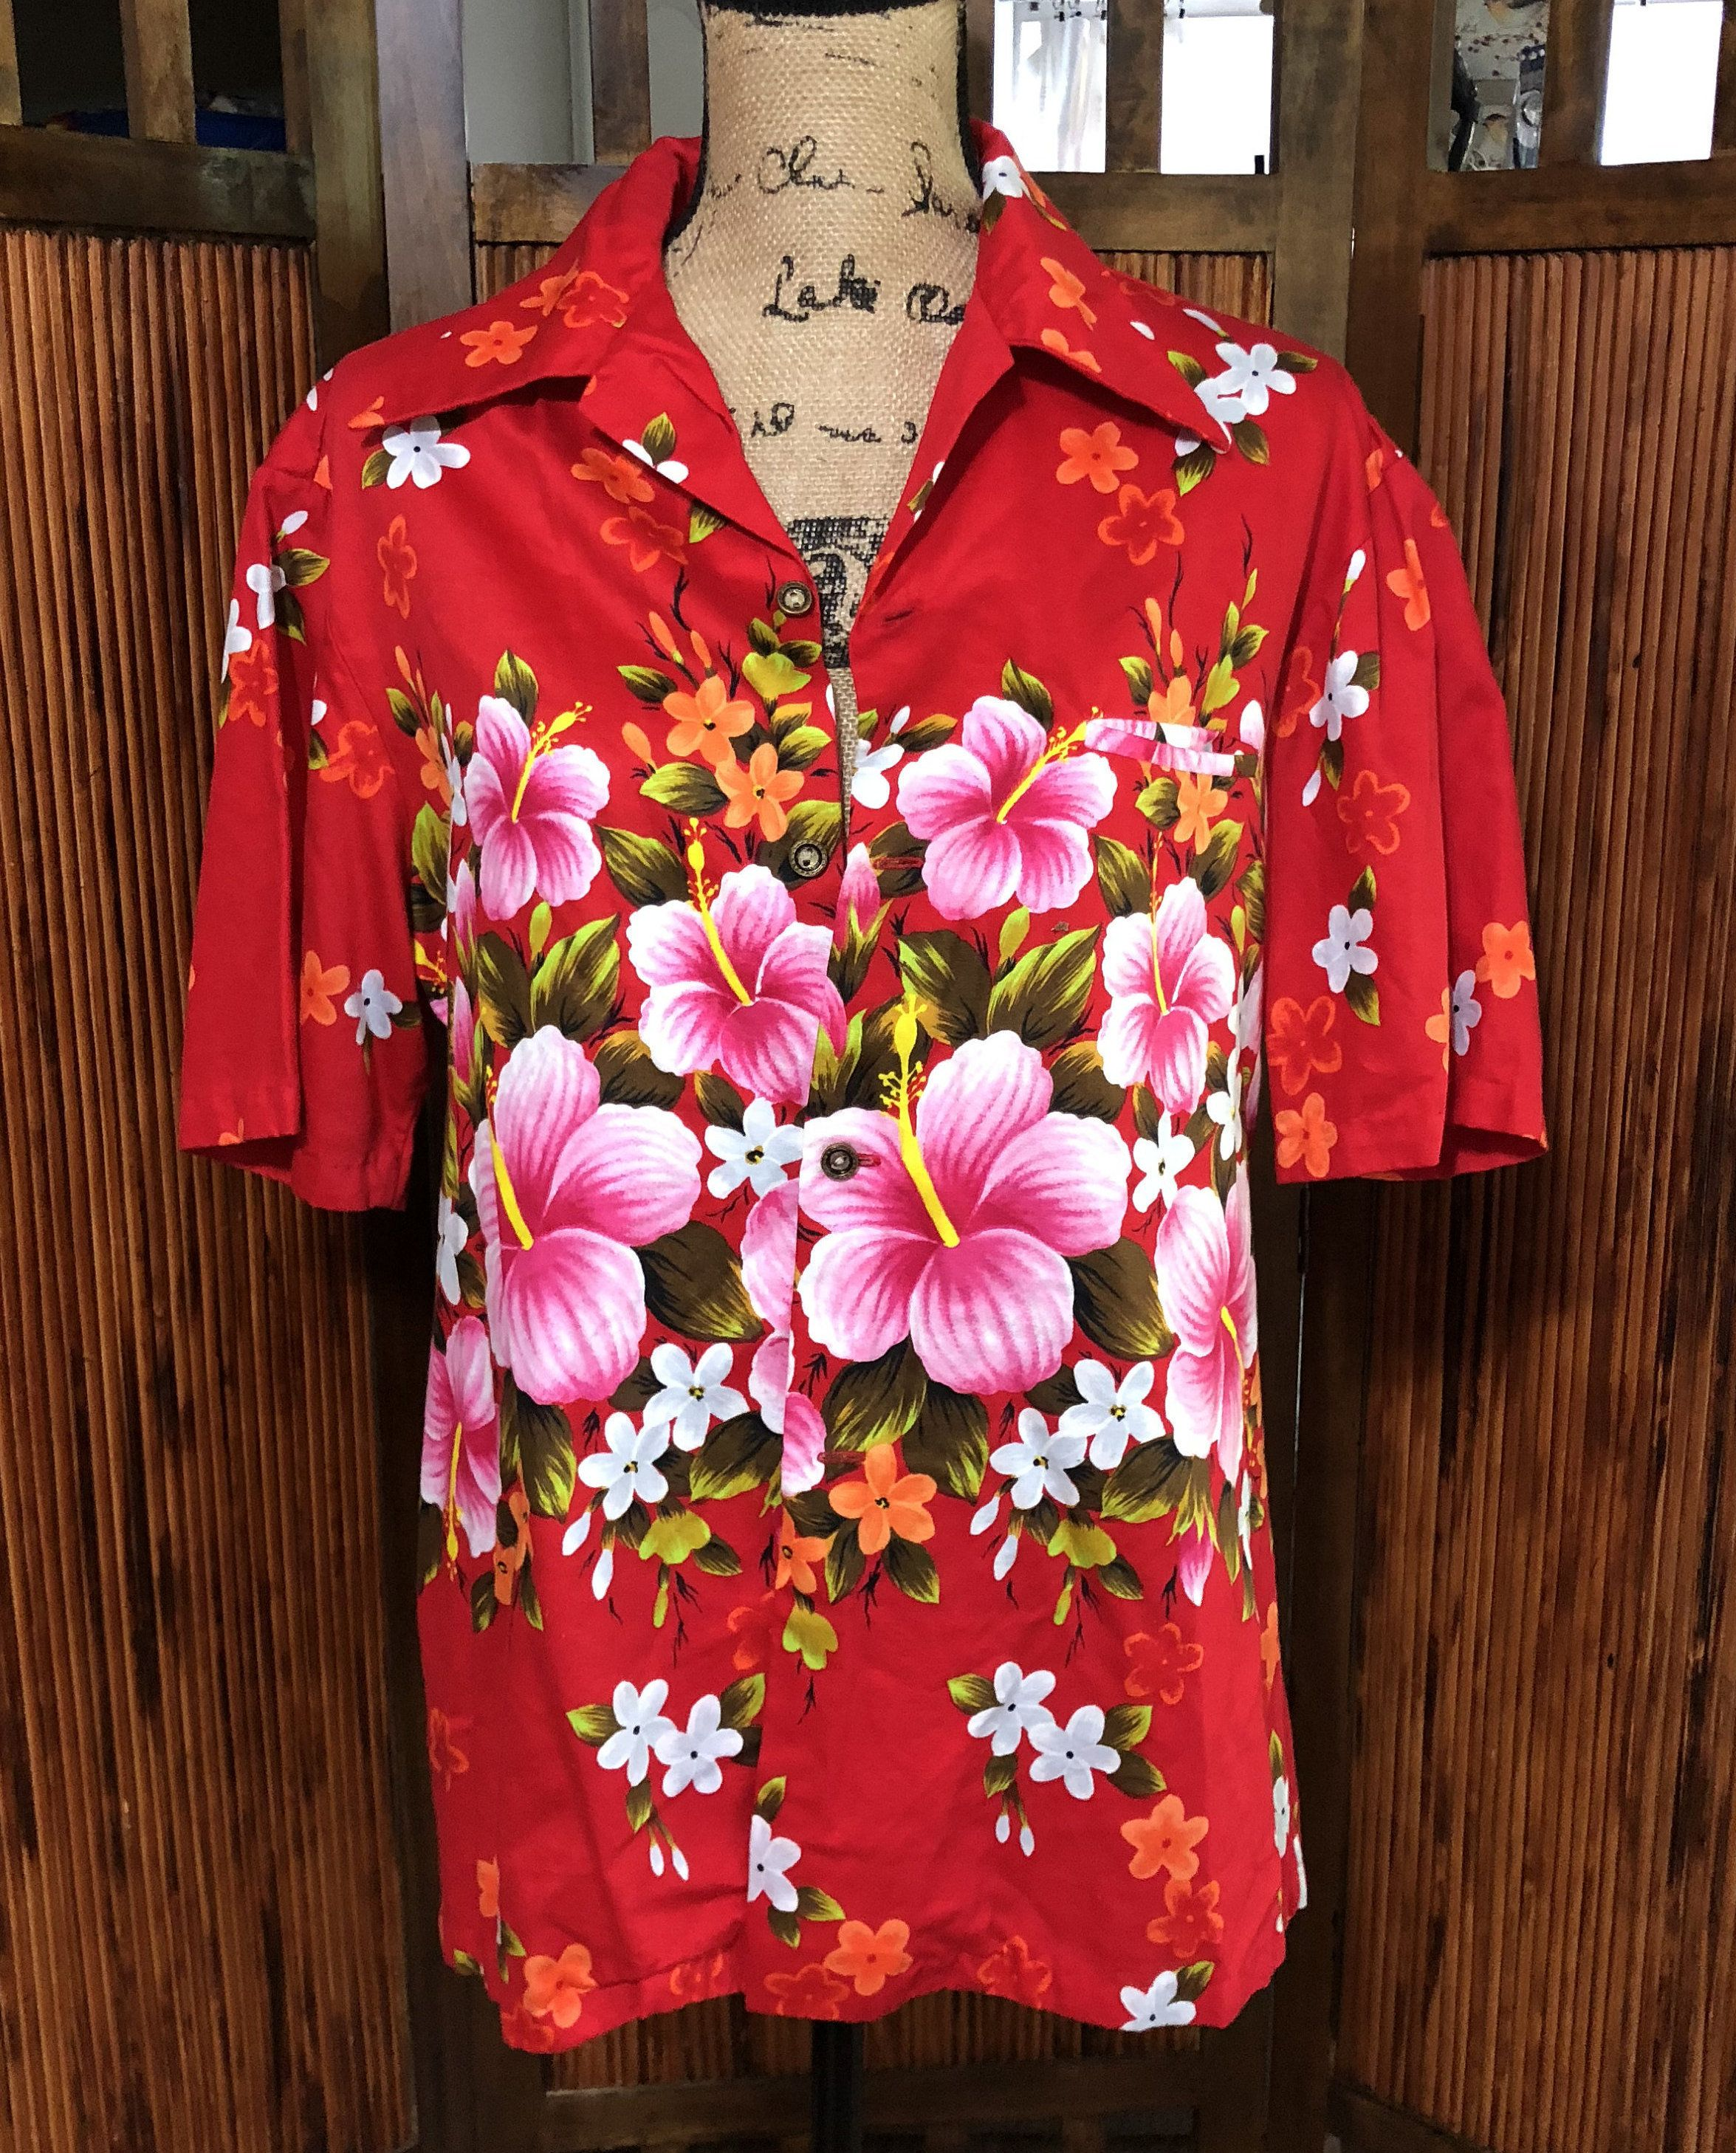 0b10fdd7 Vintage Ui-Maikai aloha Hawaiian Red and Pink Floral button up shirt by  BoujeeBearVintage on Etsy